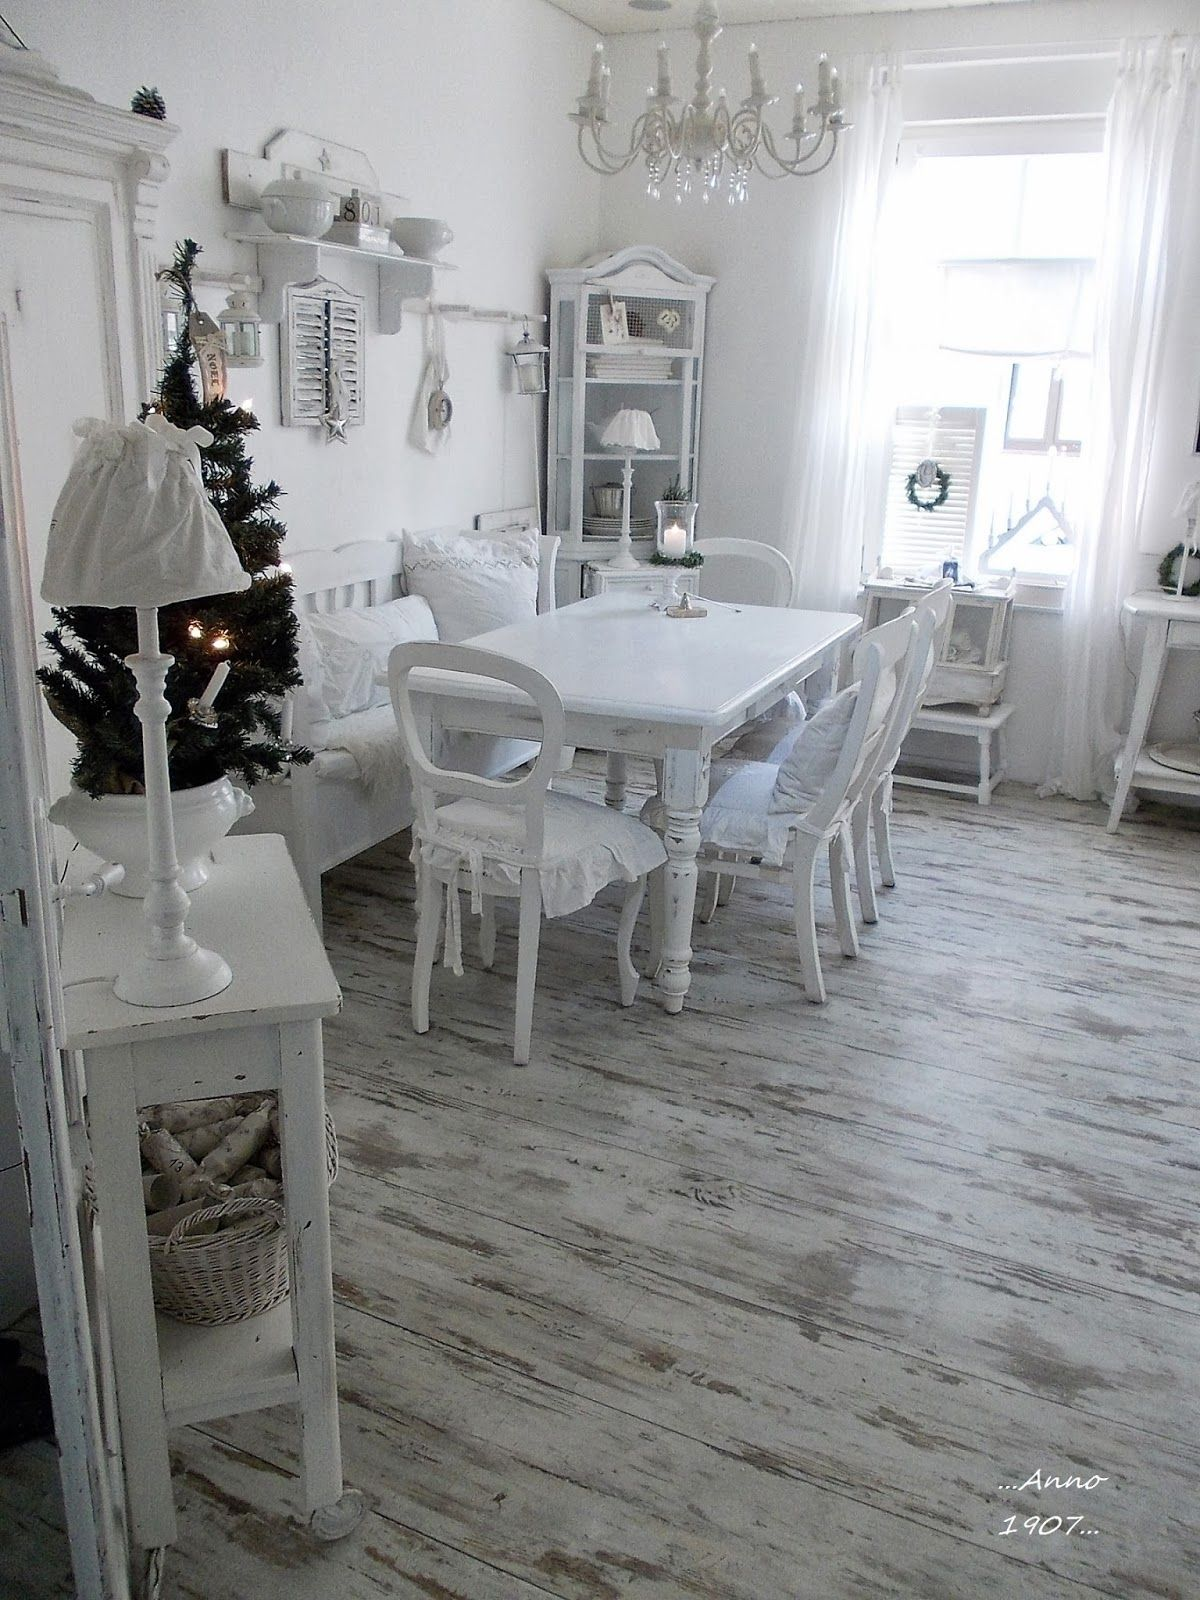 Möbel Im Landhausstil Shabby Chic White Cottages Shabby Chic Dining Shabby Chic